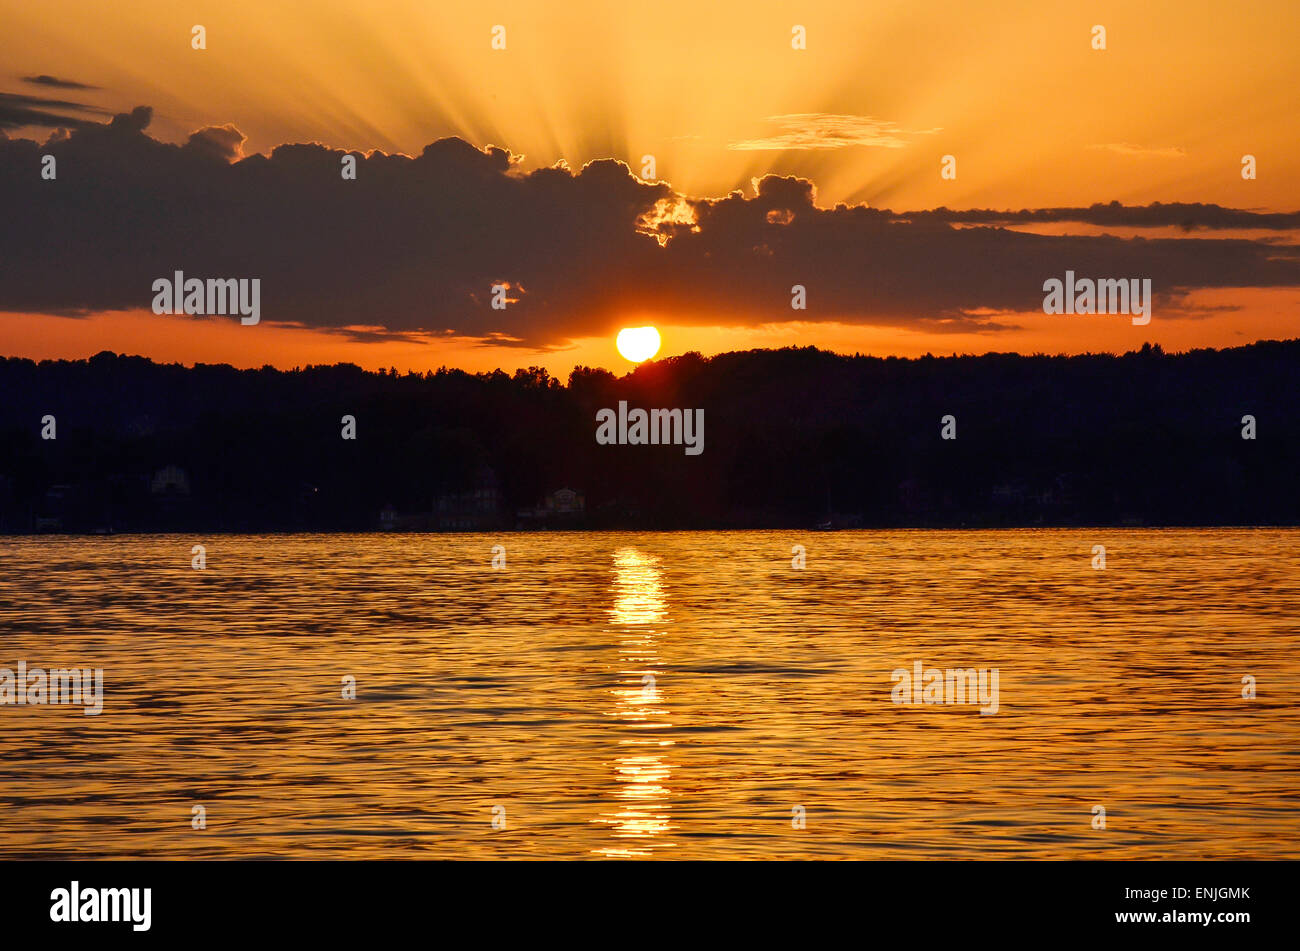 picturesque sunset over Lake Starnberg near Schloss Berg with the reflexion of the sun on the rippled water surface - Stock Image